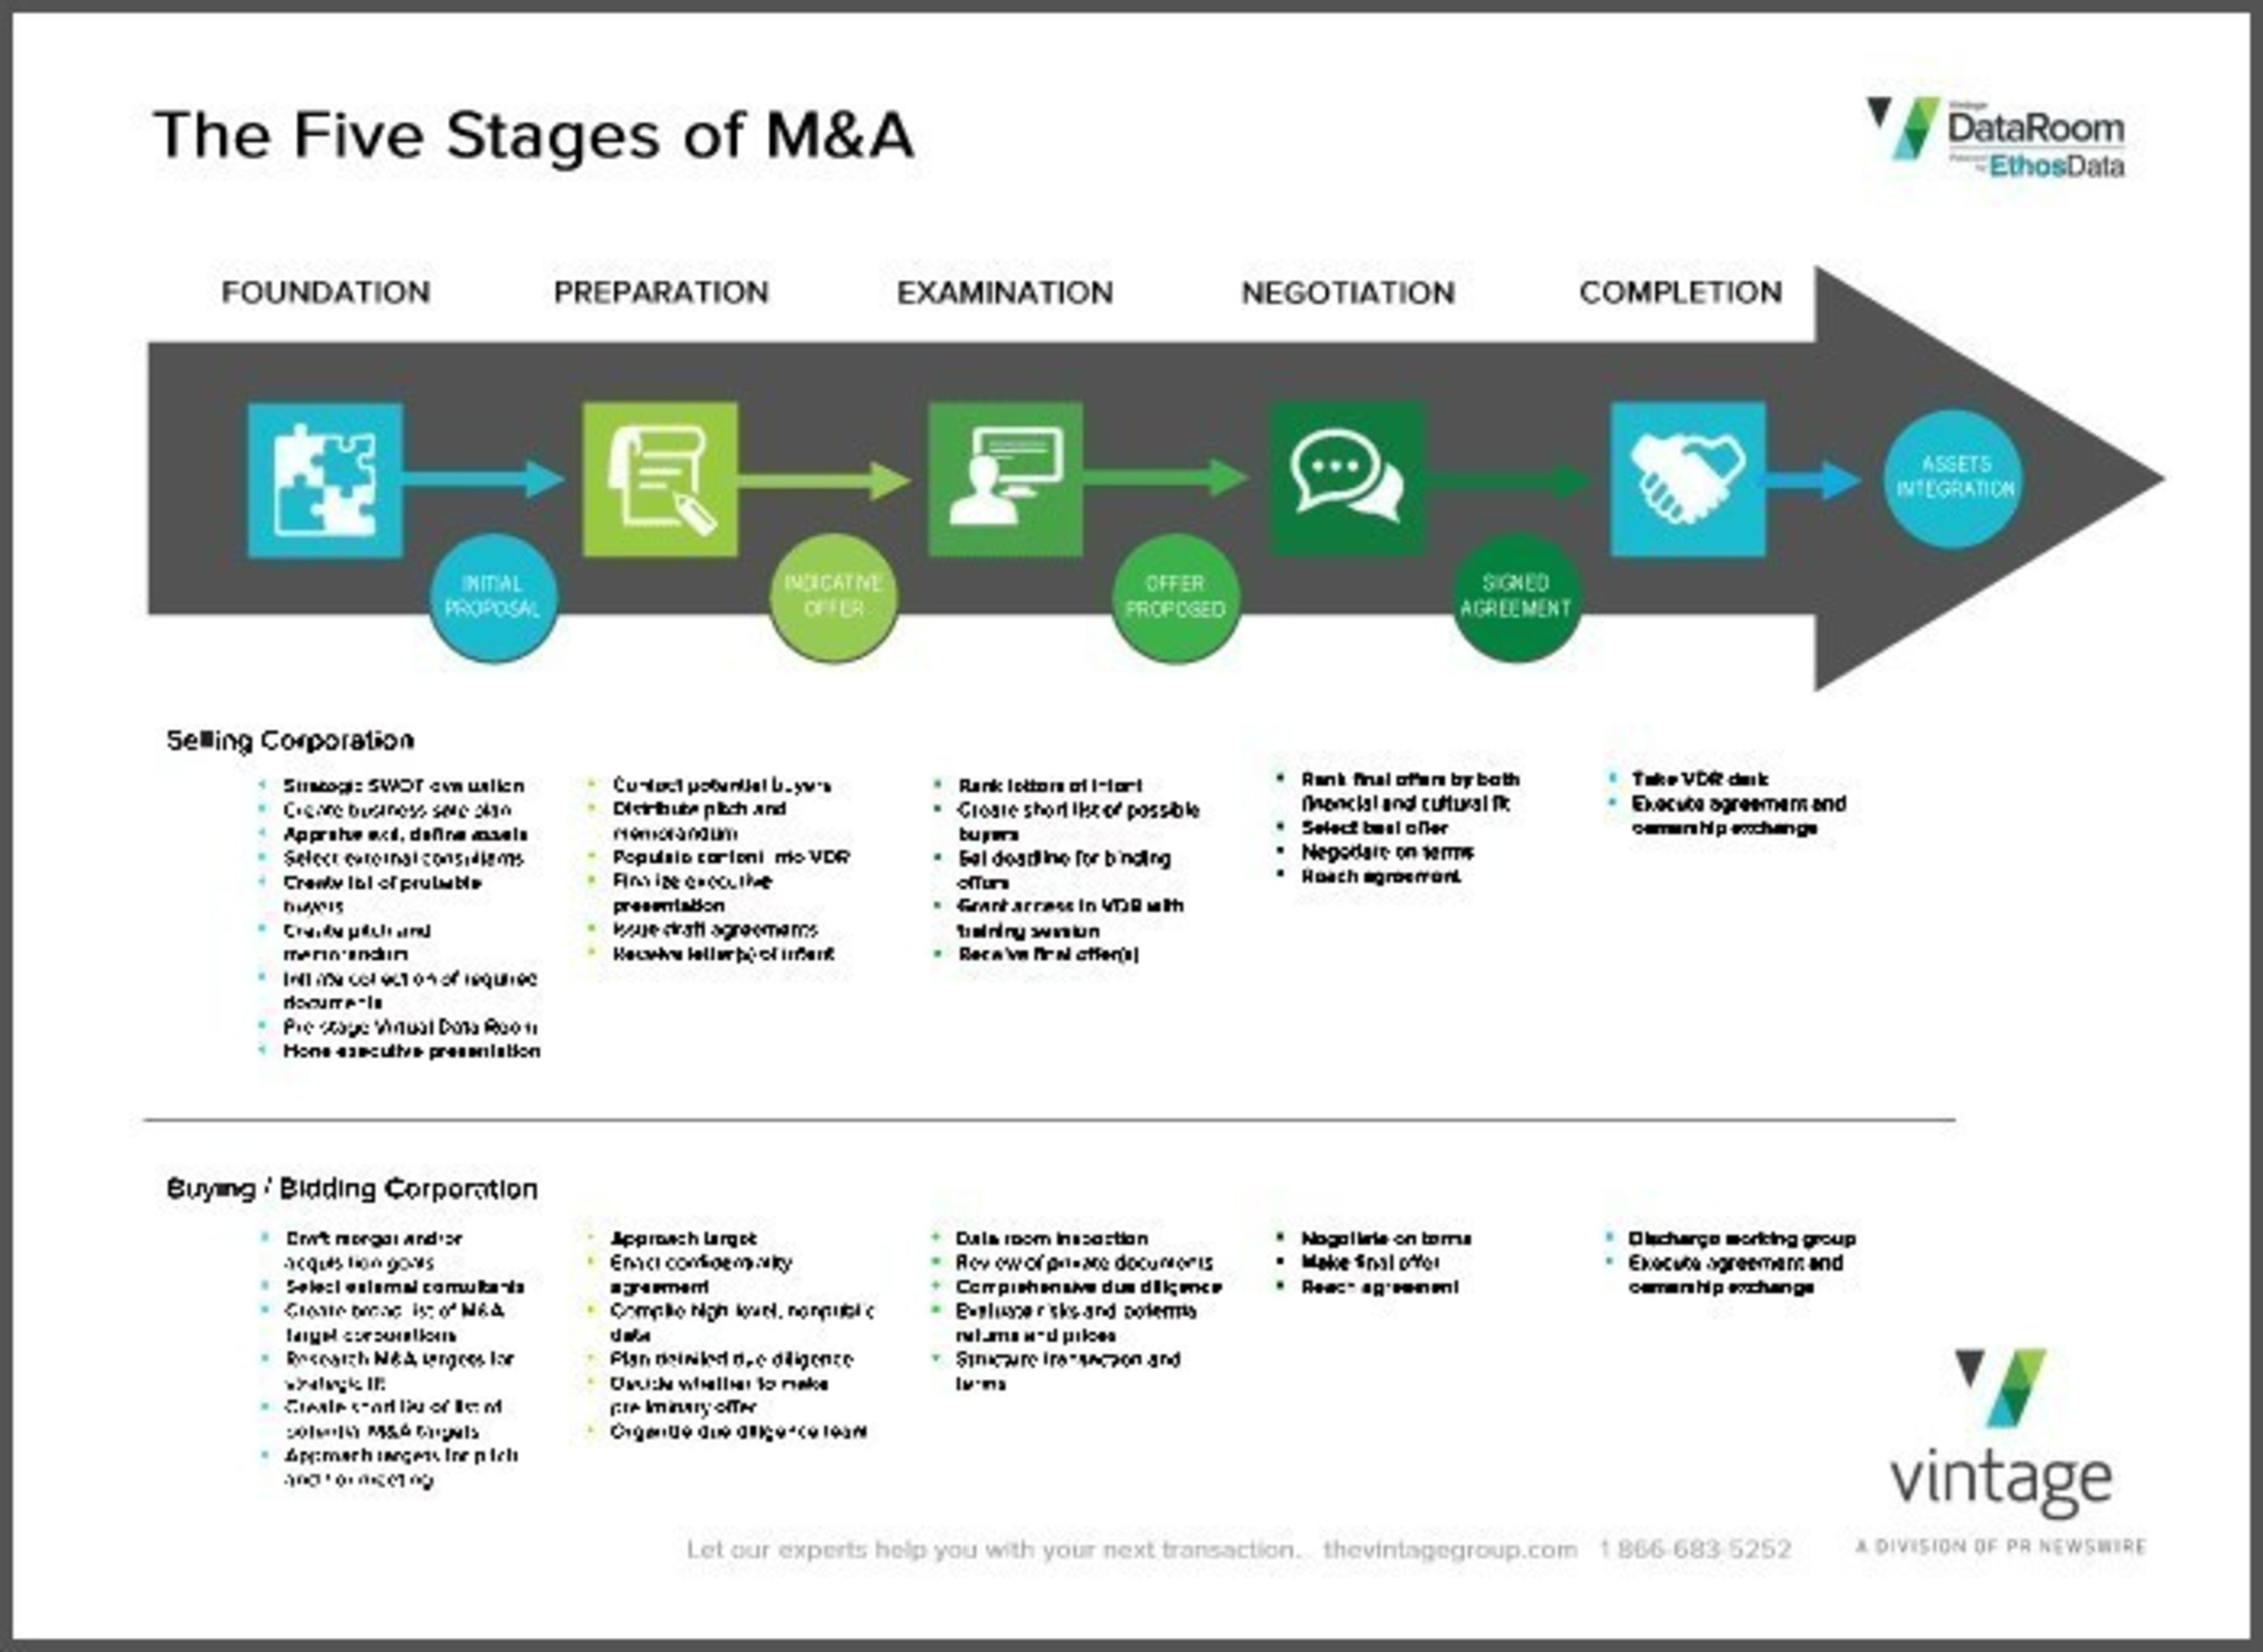 Our new 'The Five Stages of M&A' quick guide is now available for download here > ...